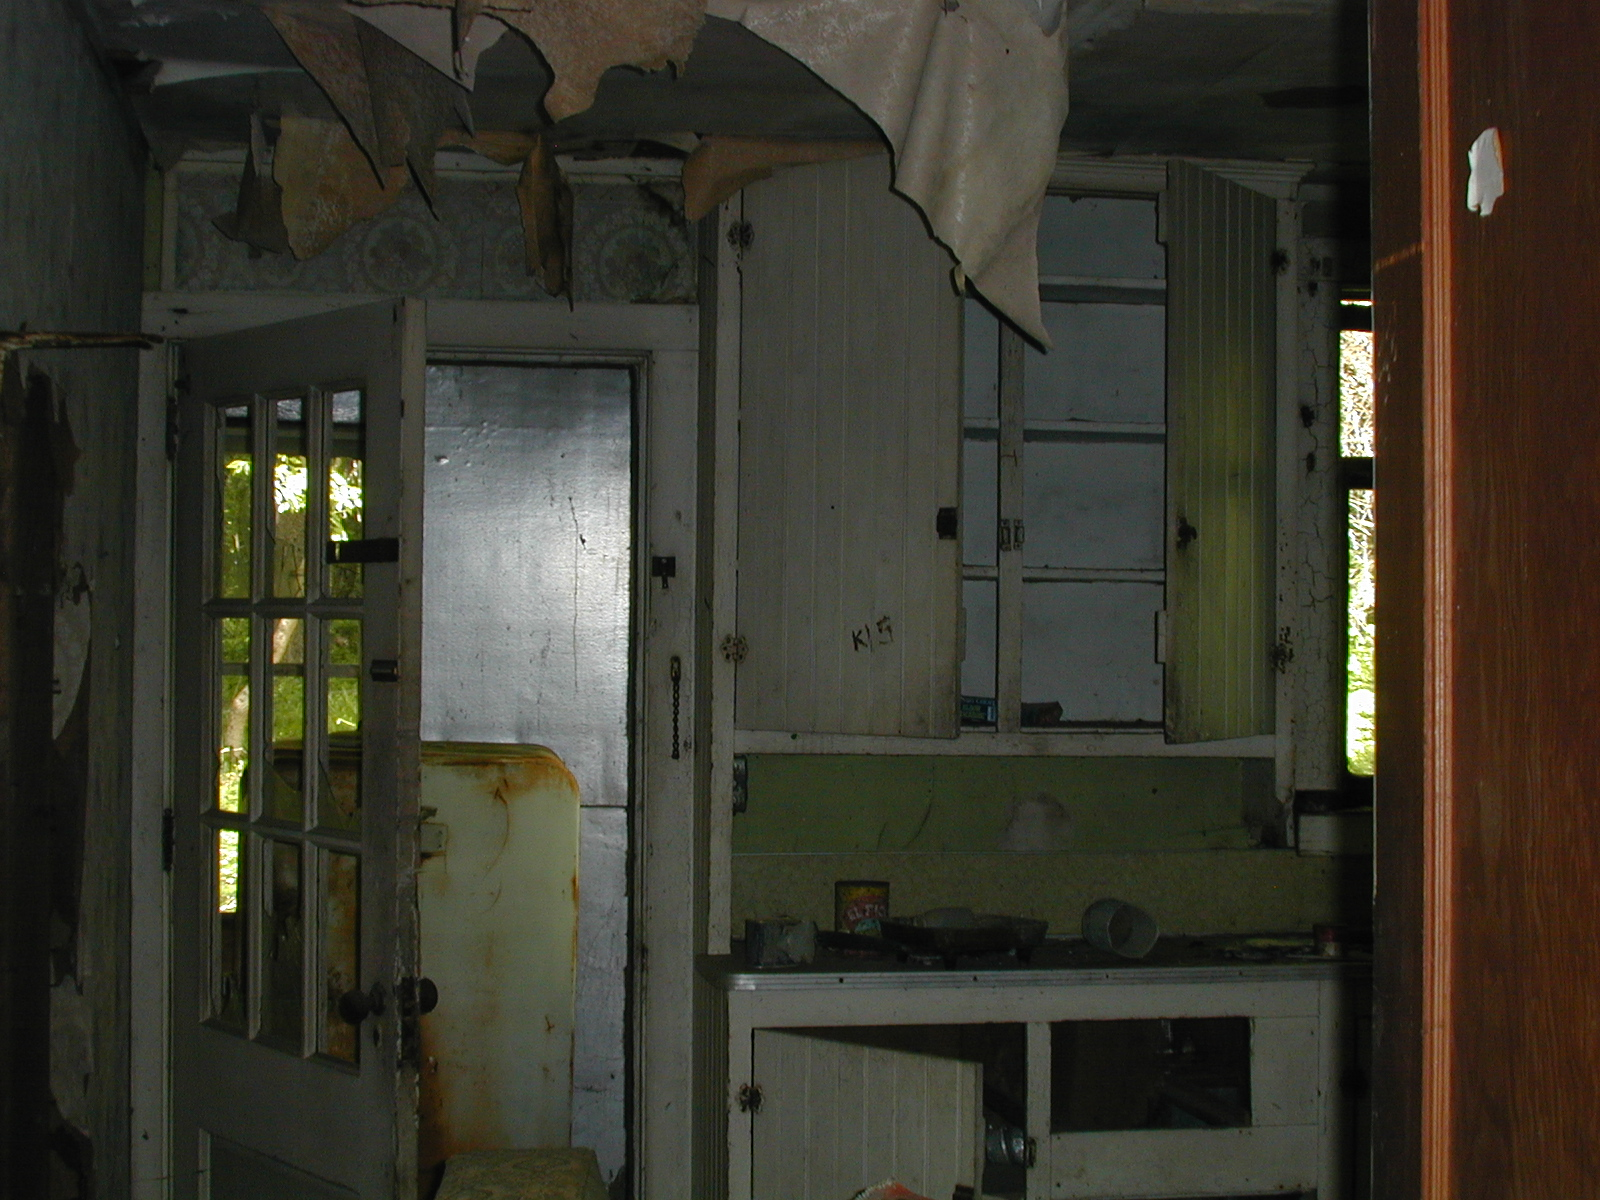 Kitchen of the second house